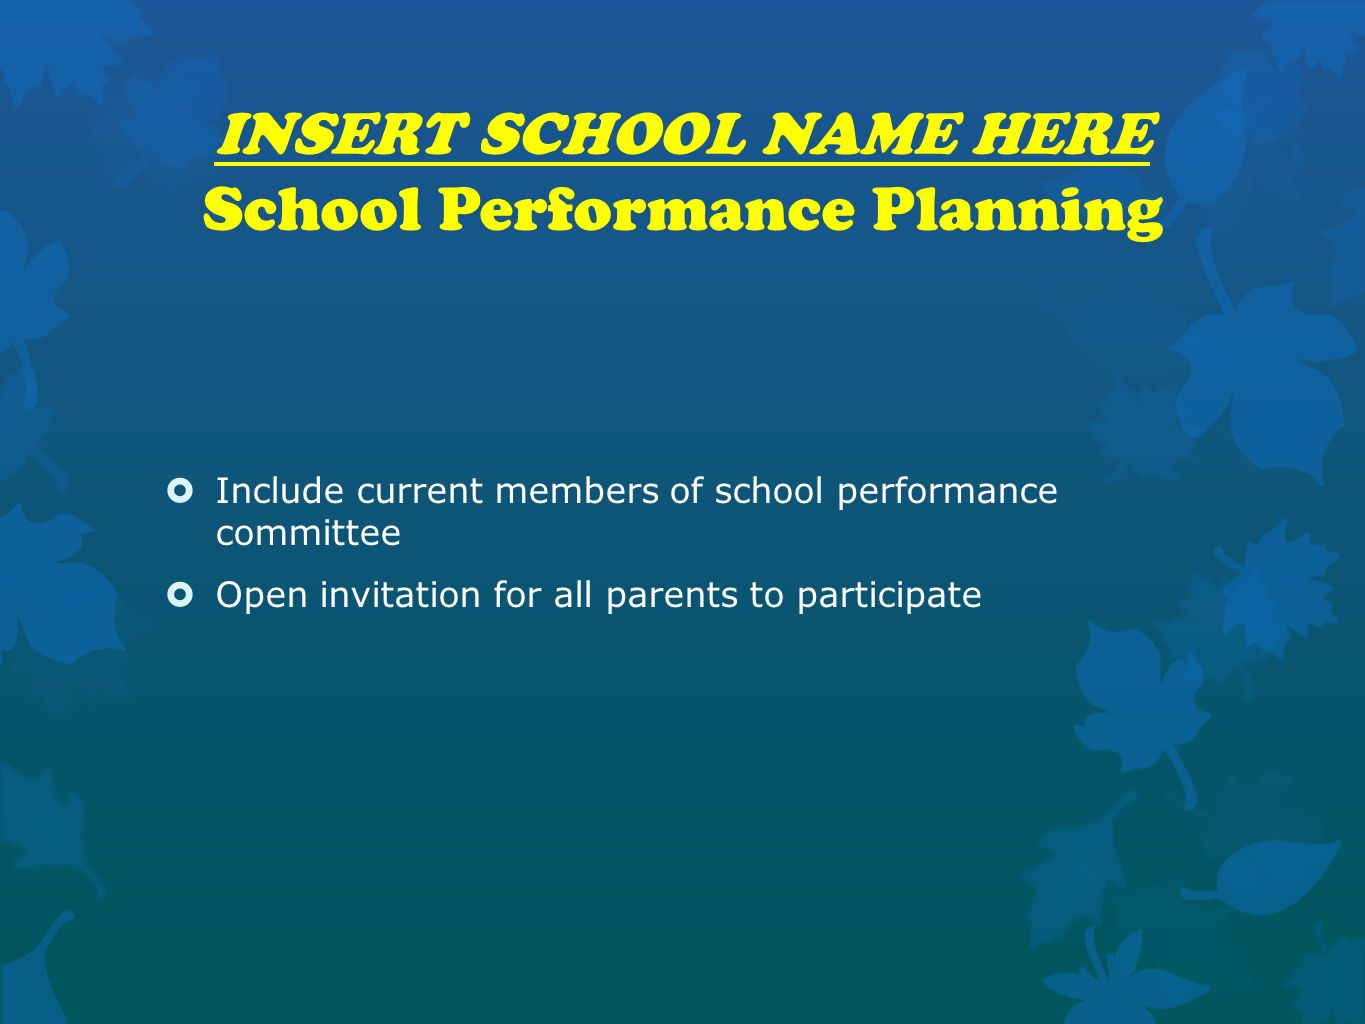 INSERT SCHOOL NAME HERE School Performance Planning